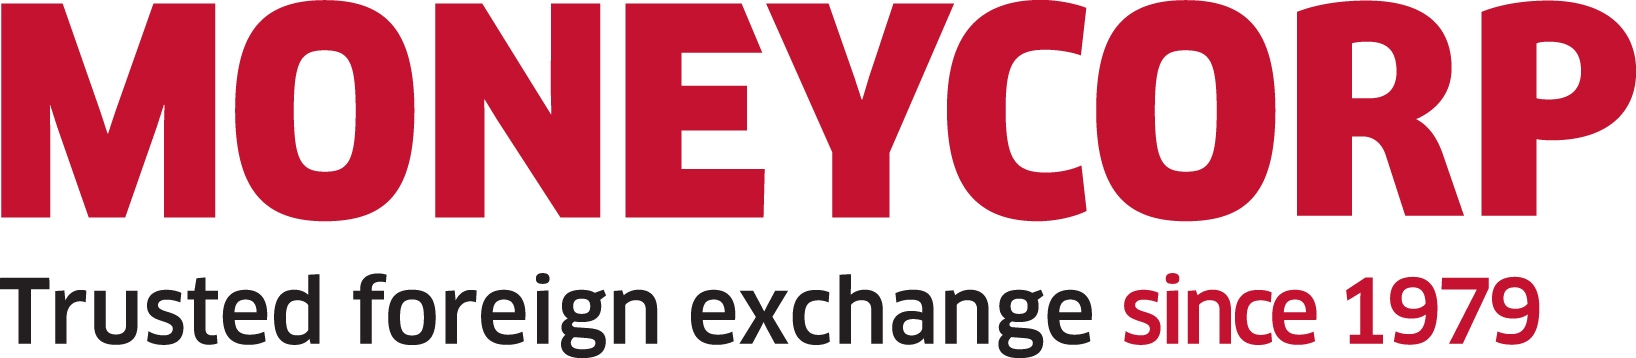 Moneycorp trusted foreign exchange